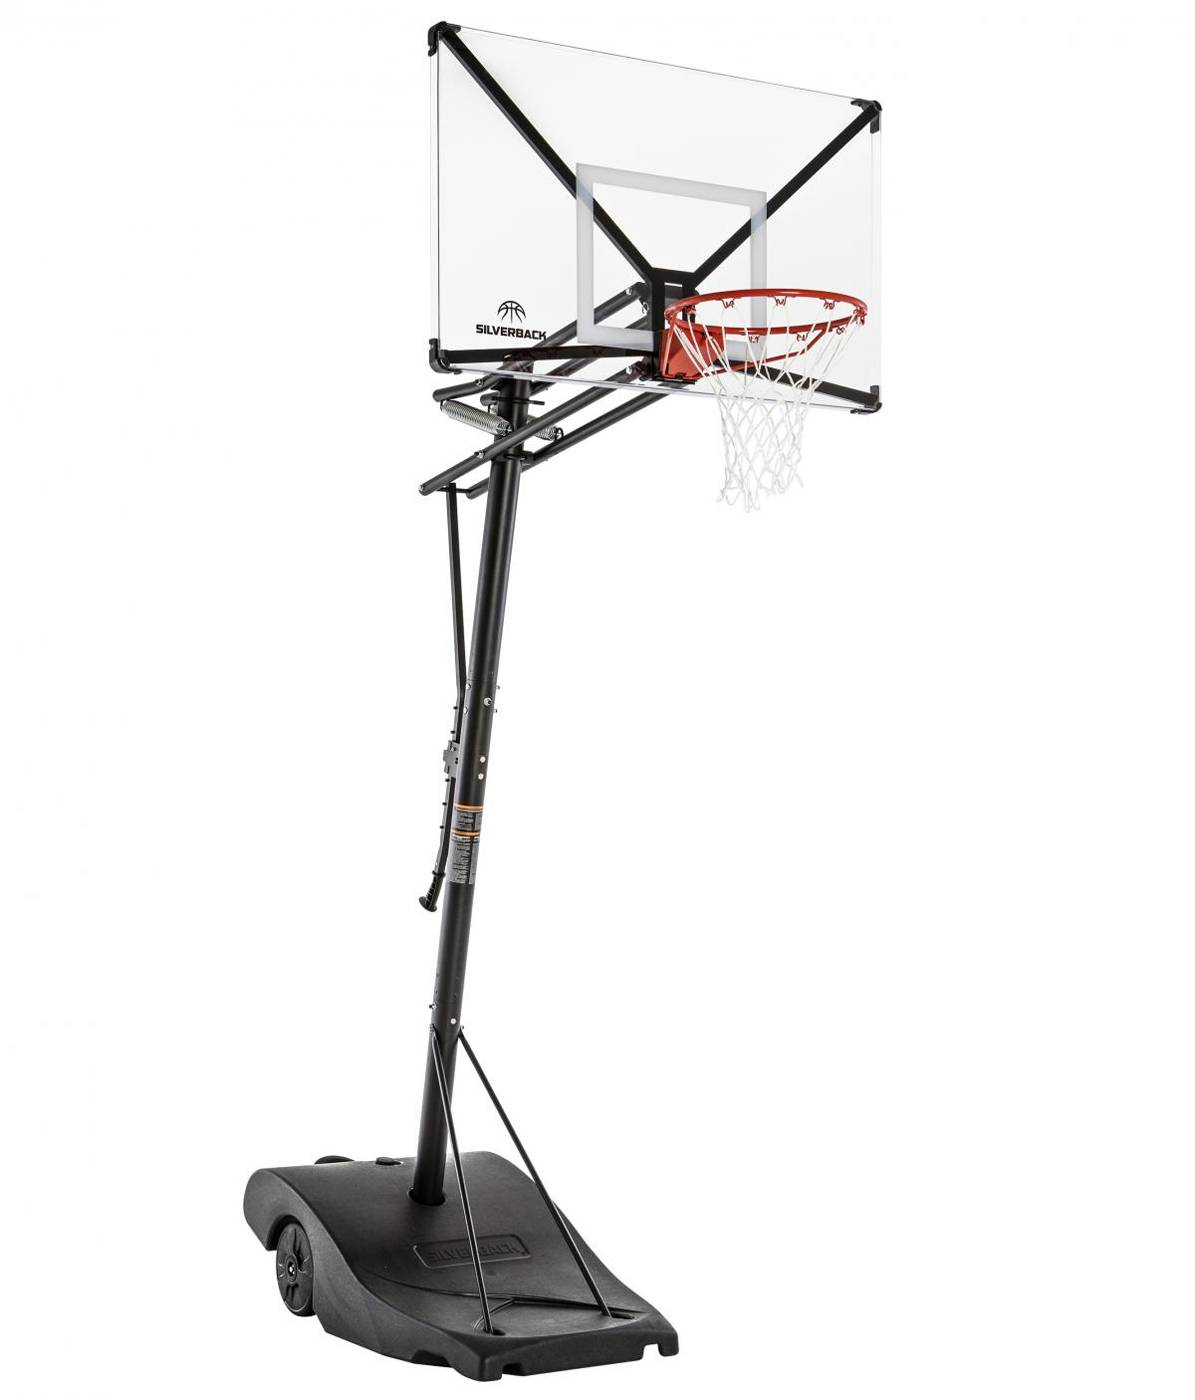 Home Design And Outlet Center Silverback Nxt 50 Portable Basketball Hoop